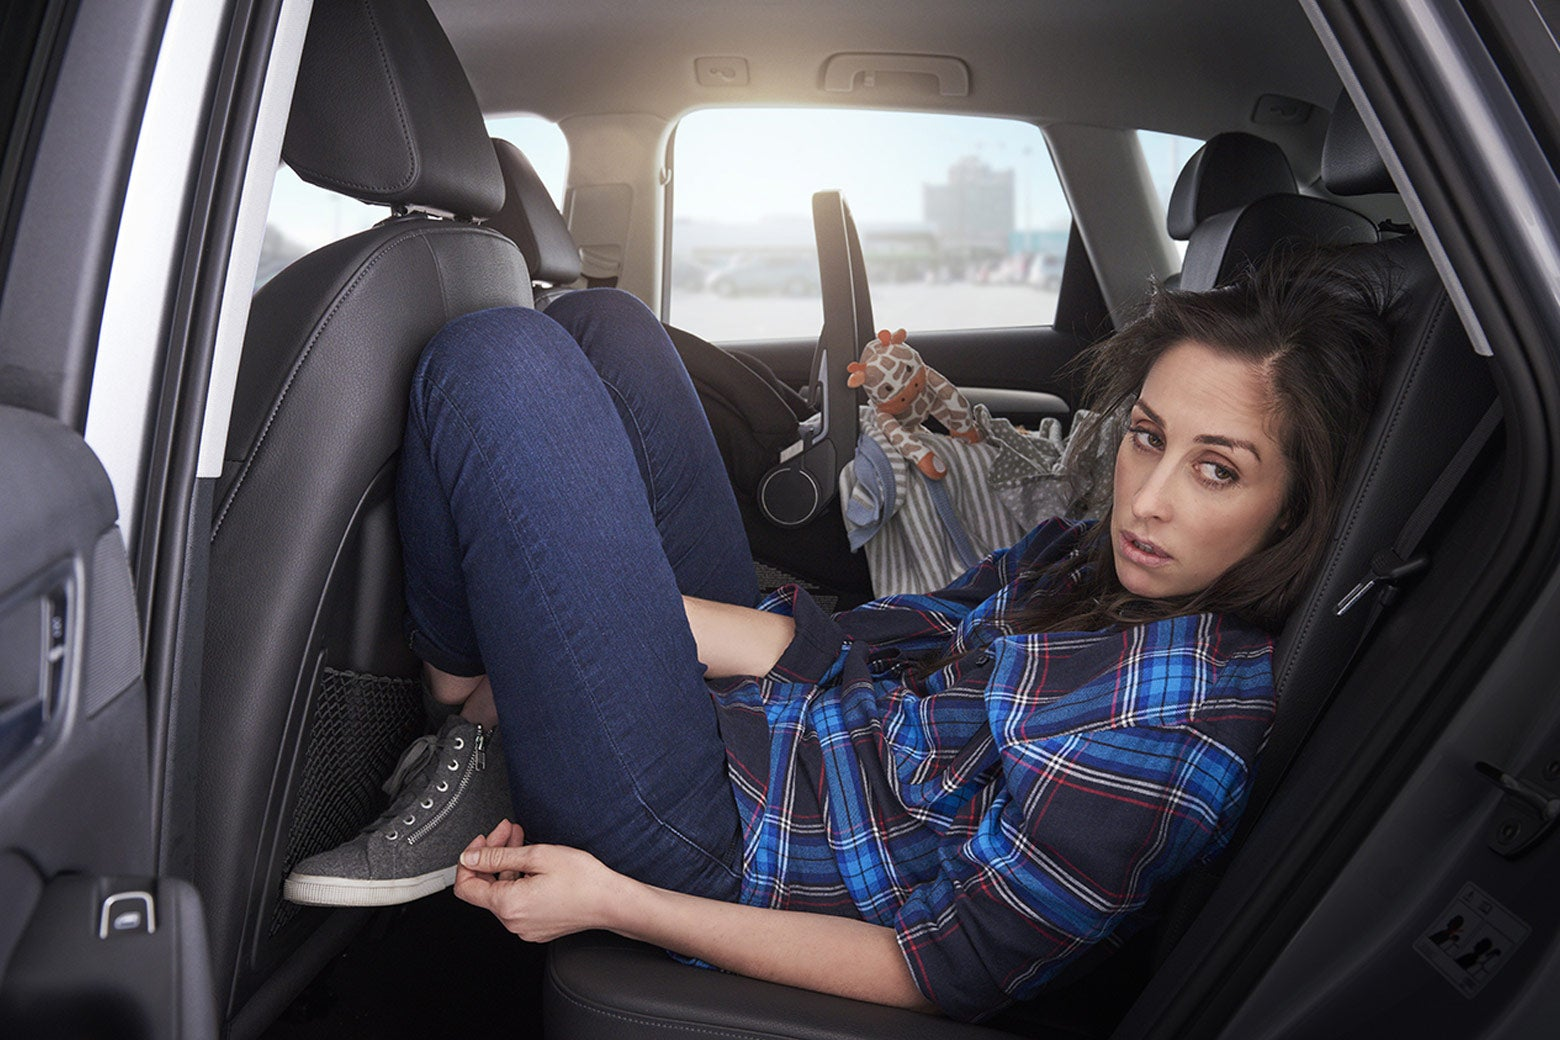 Catherine Reitman sits awkwardly in a car's rear, driver-side passenger seat in this still from Workin' Moms.